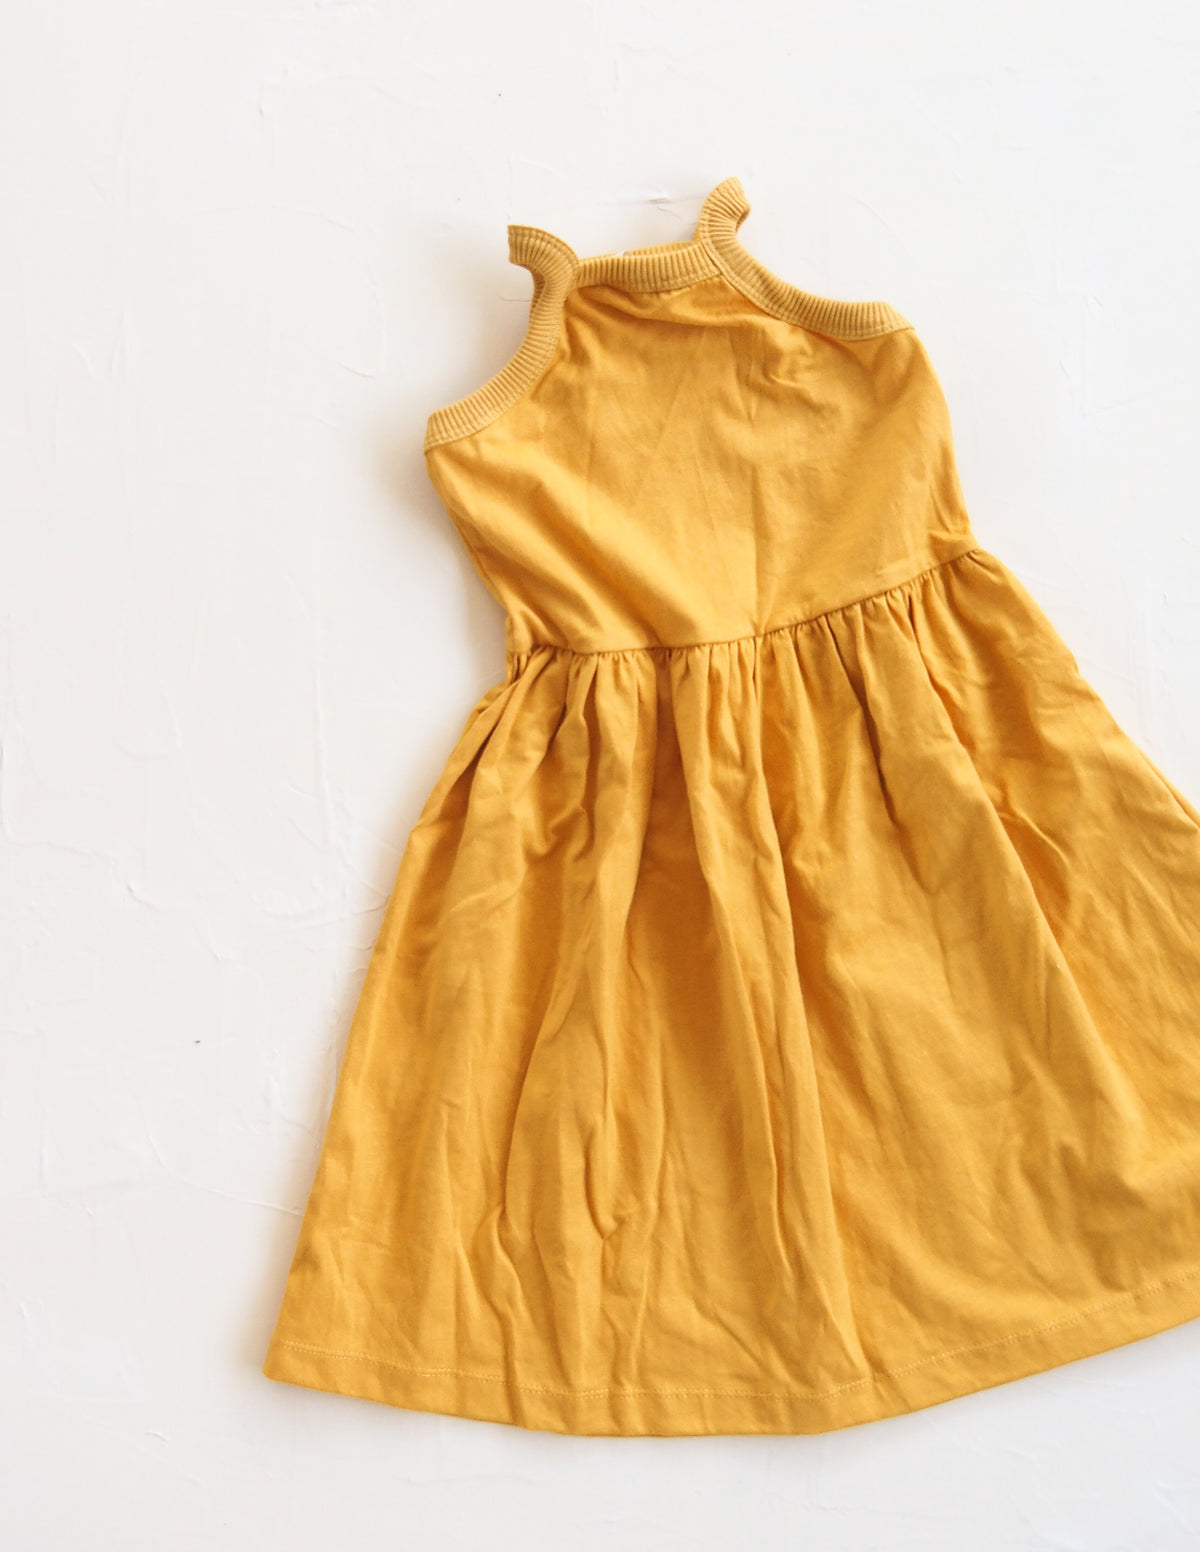 The Basic Dress - Golden